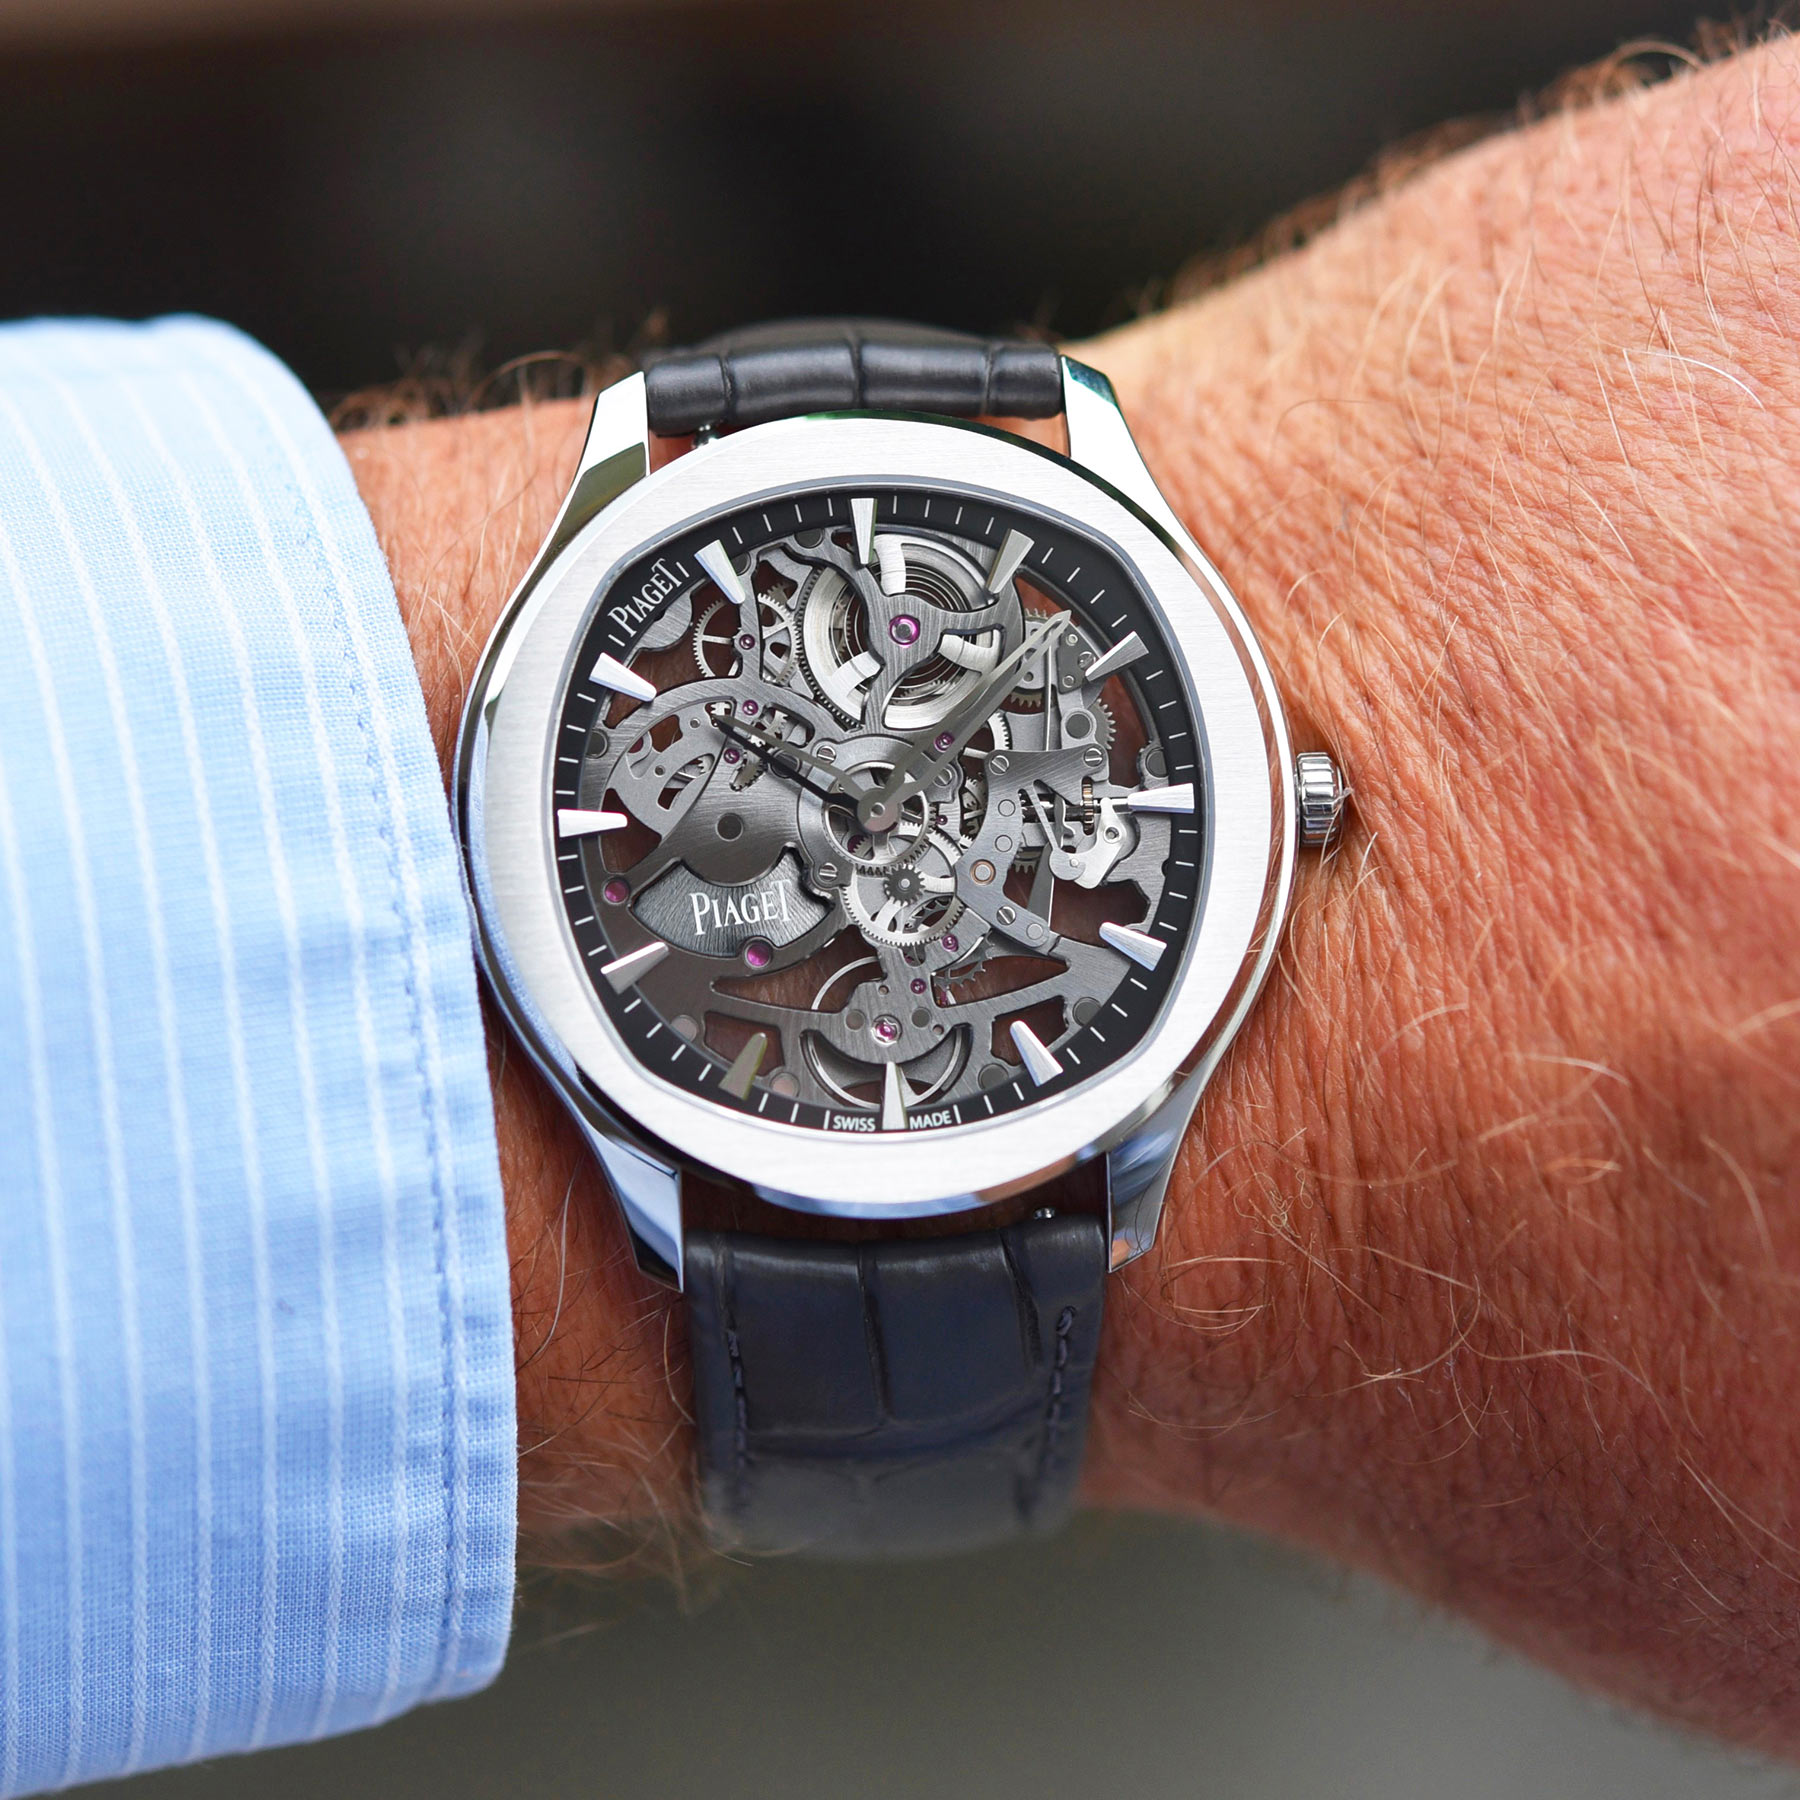 Piaget Polo Skeleton in-depth review video - 2